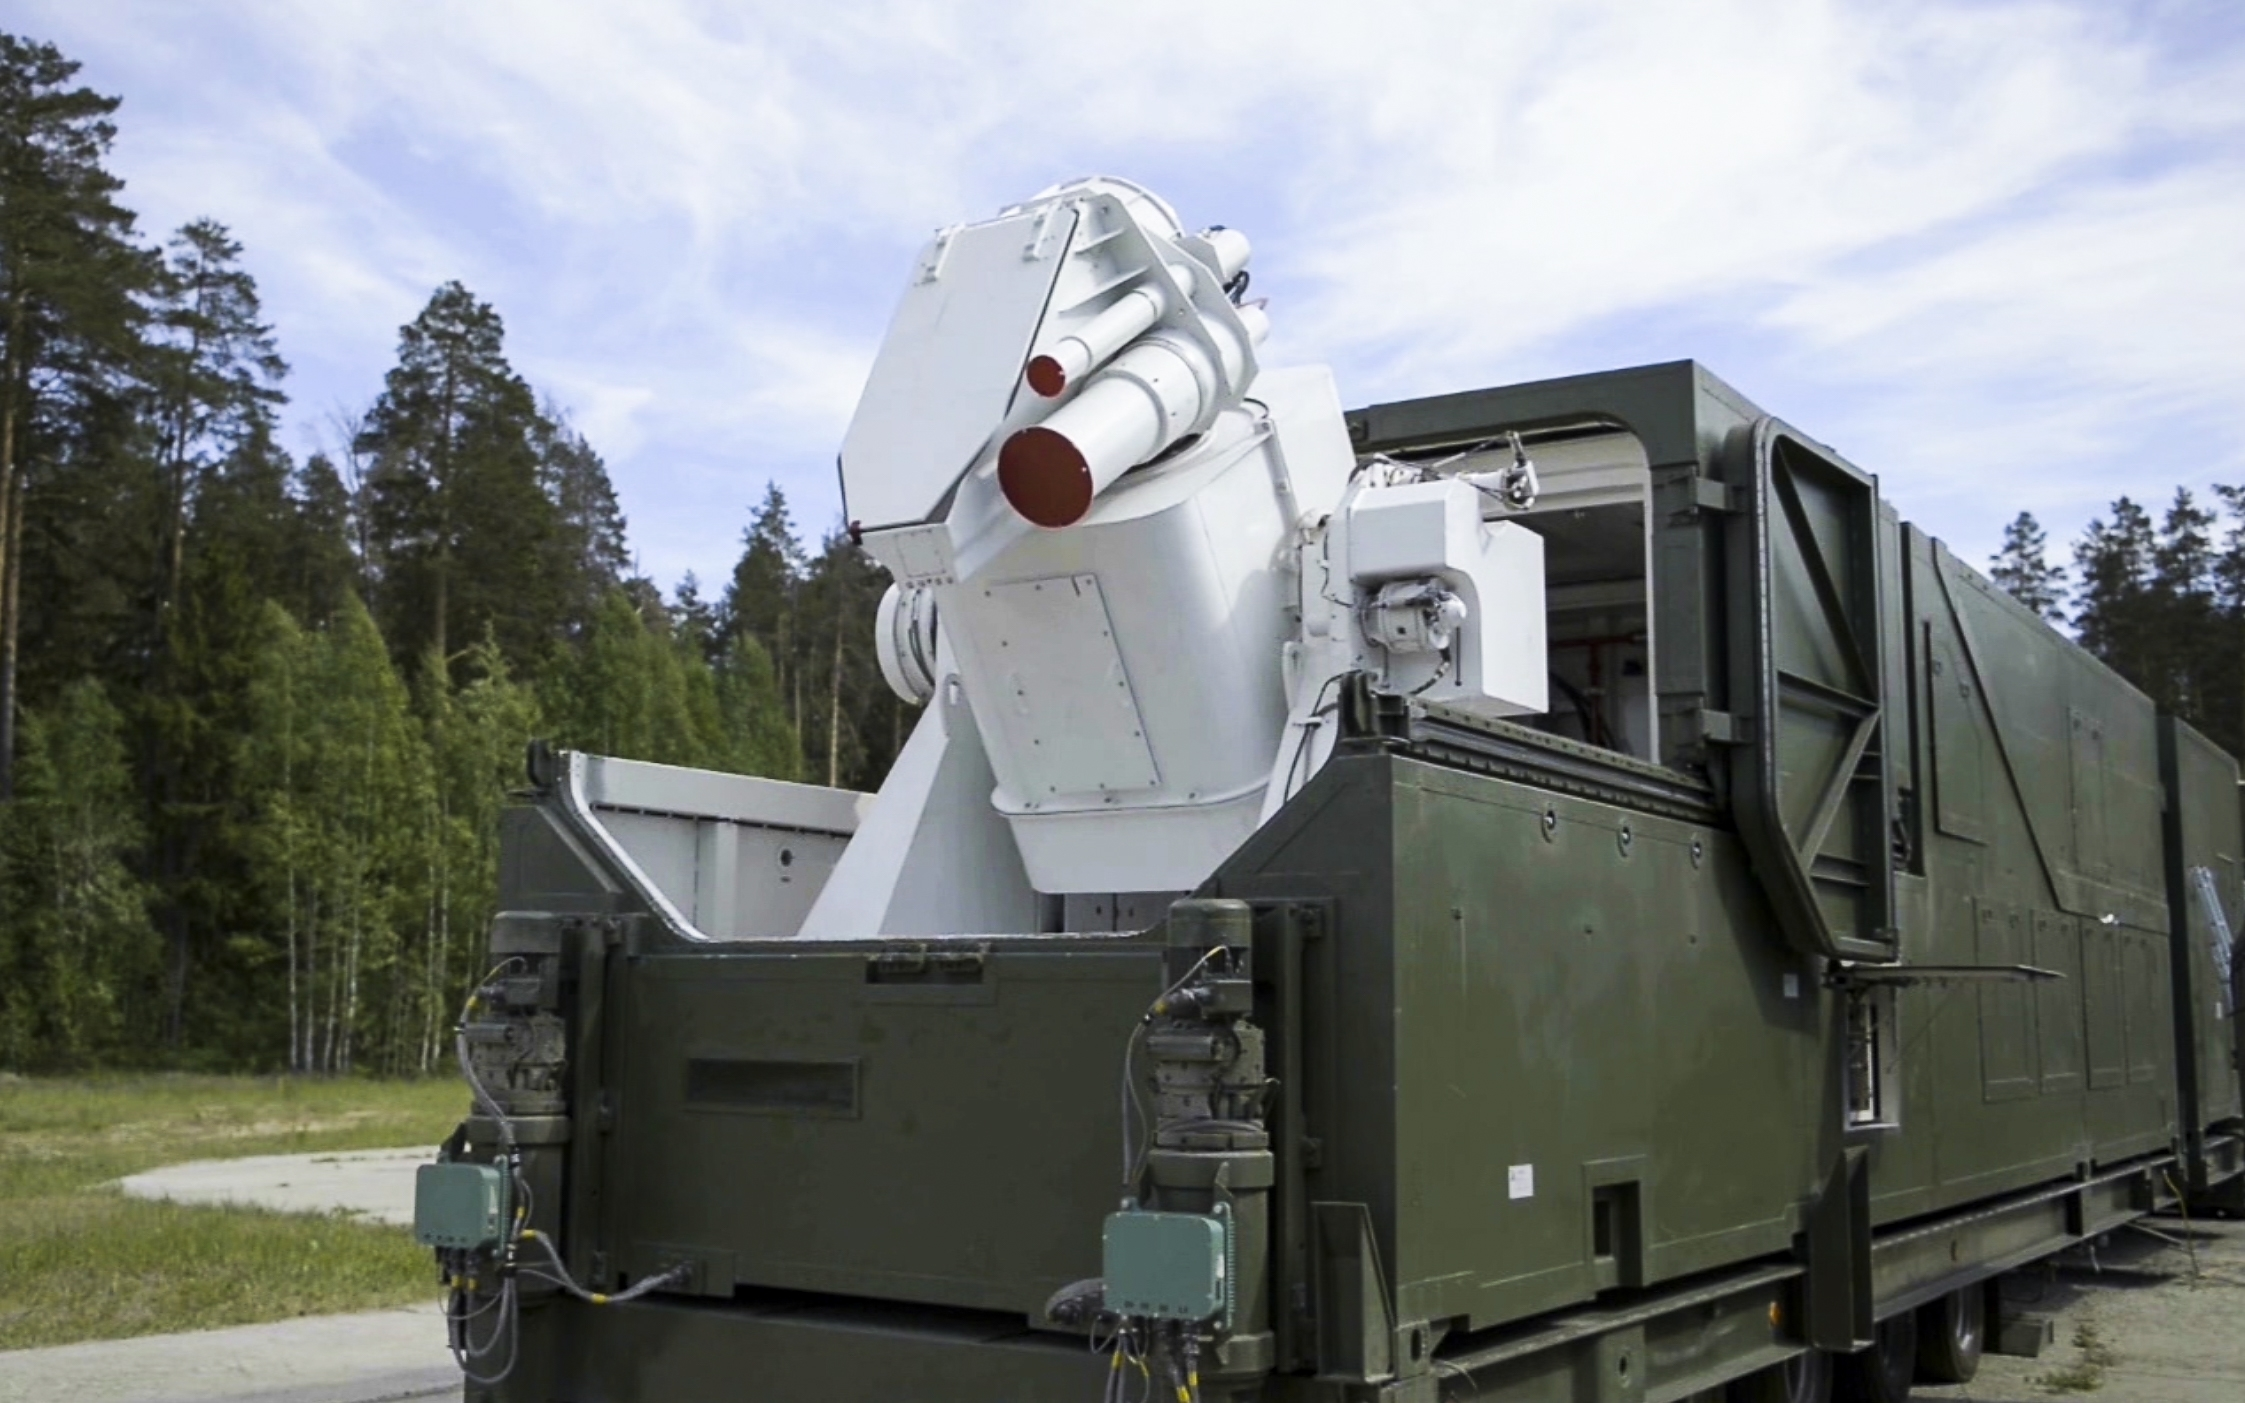 In this video grab provided by RU-RTR Russian television via AP television, March 1, 2018, a Russian military truck with a laser weapon mounted on it is shown at an undisclosed location in Russia. President Vladimir Putin declared Thursday that Russi...